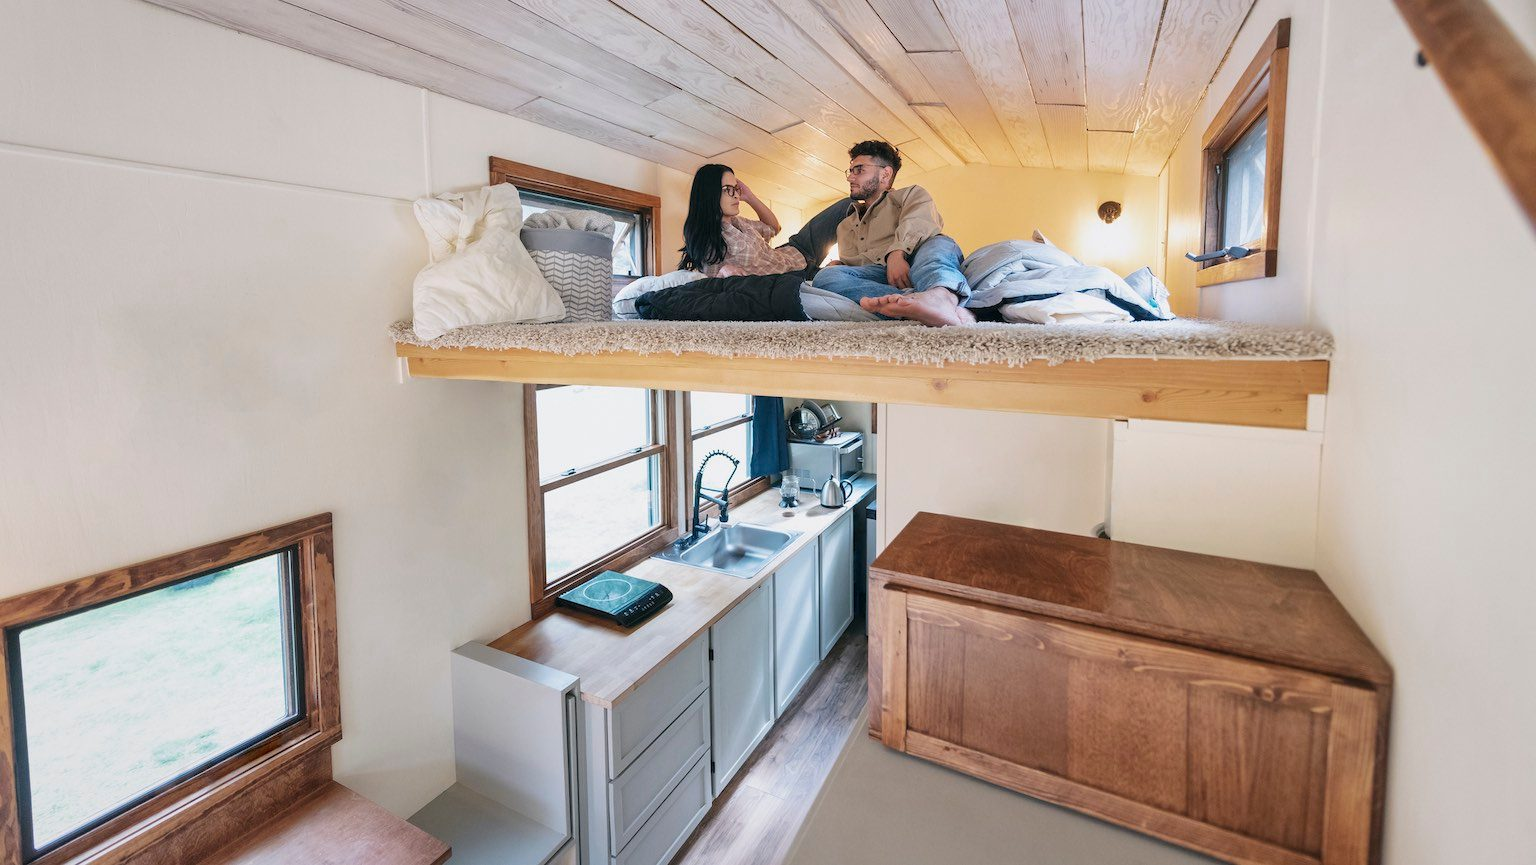 Young couple relaxing in the loft bed of a tiny house.